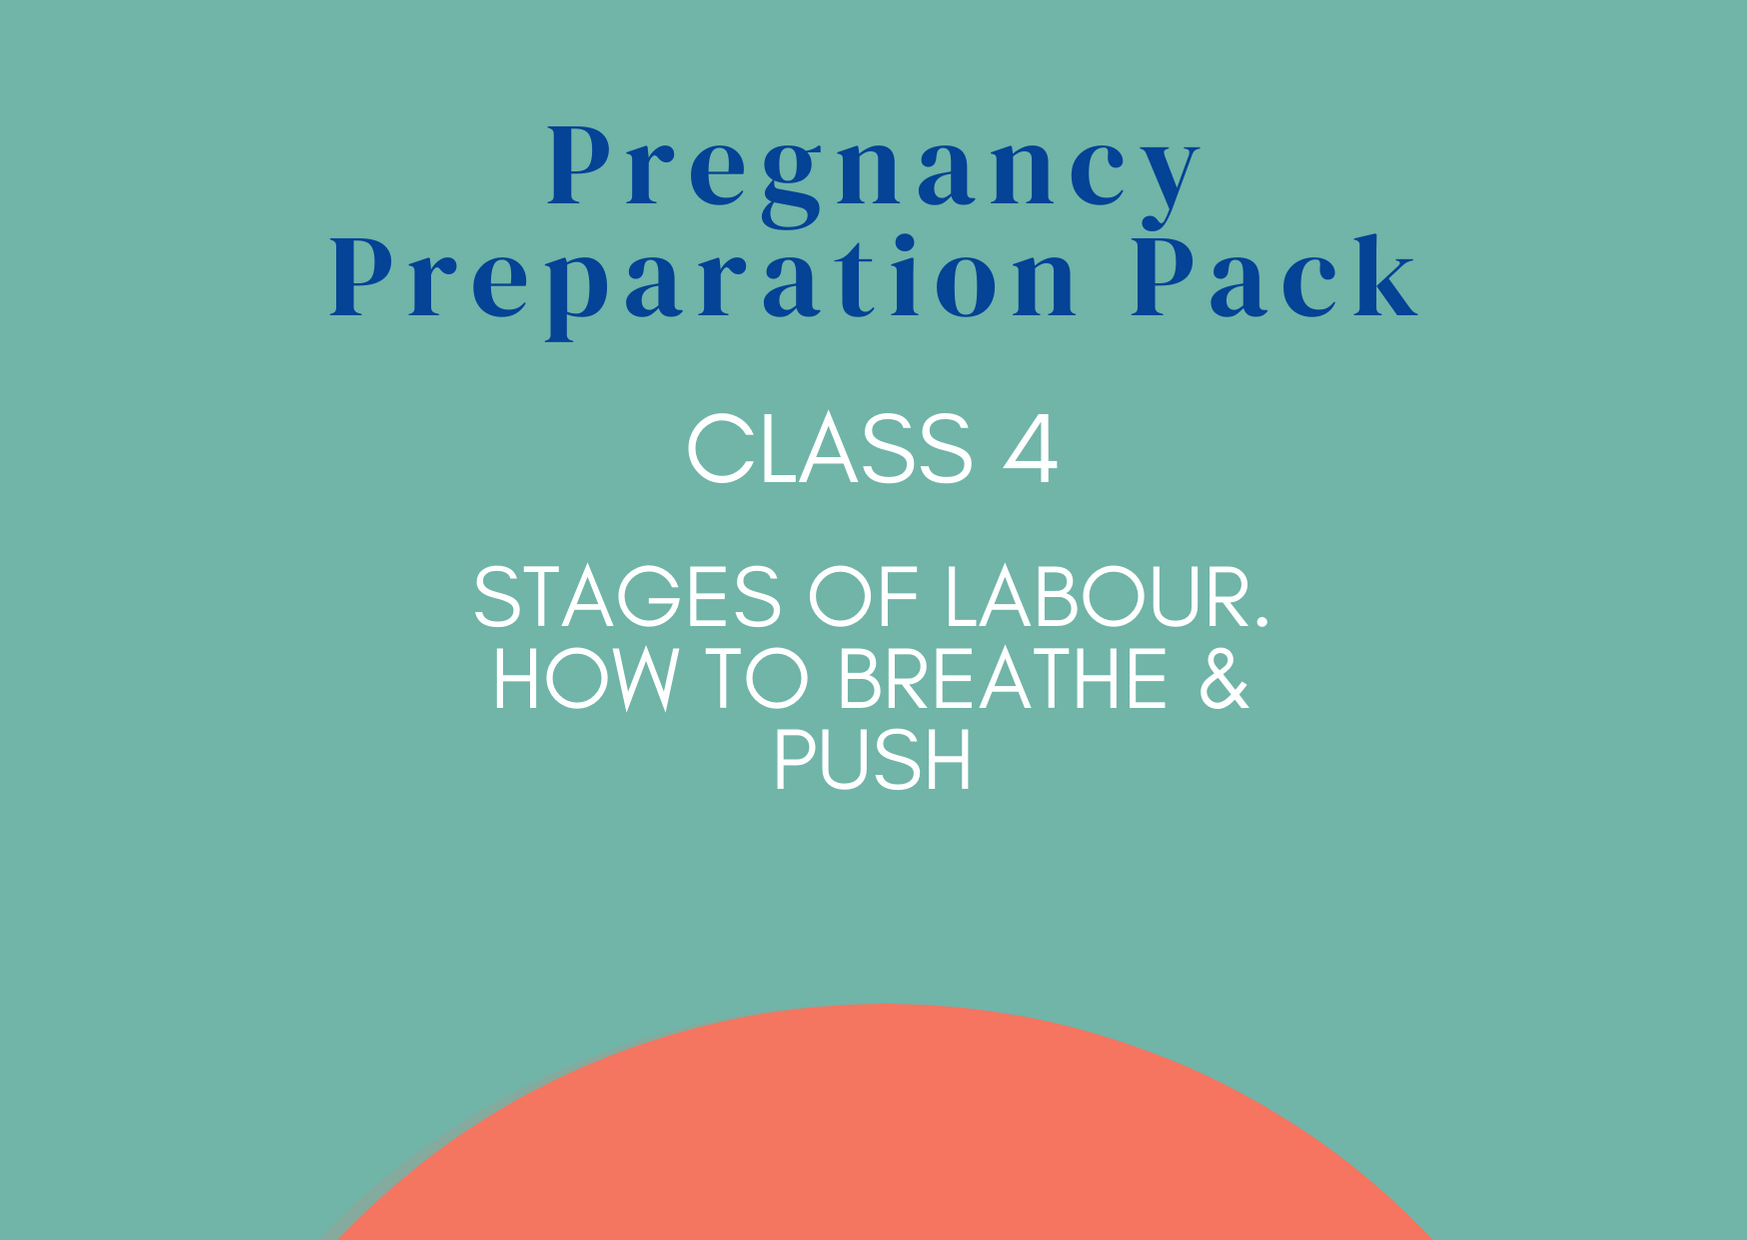 4. Stages of Labour. How to Breathe and Push